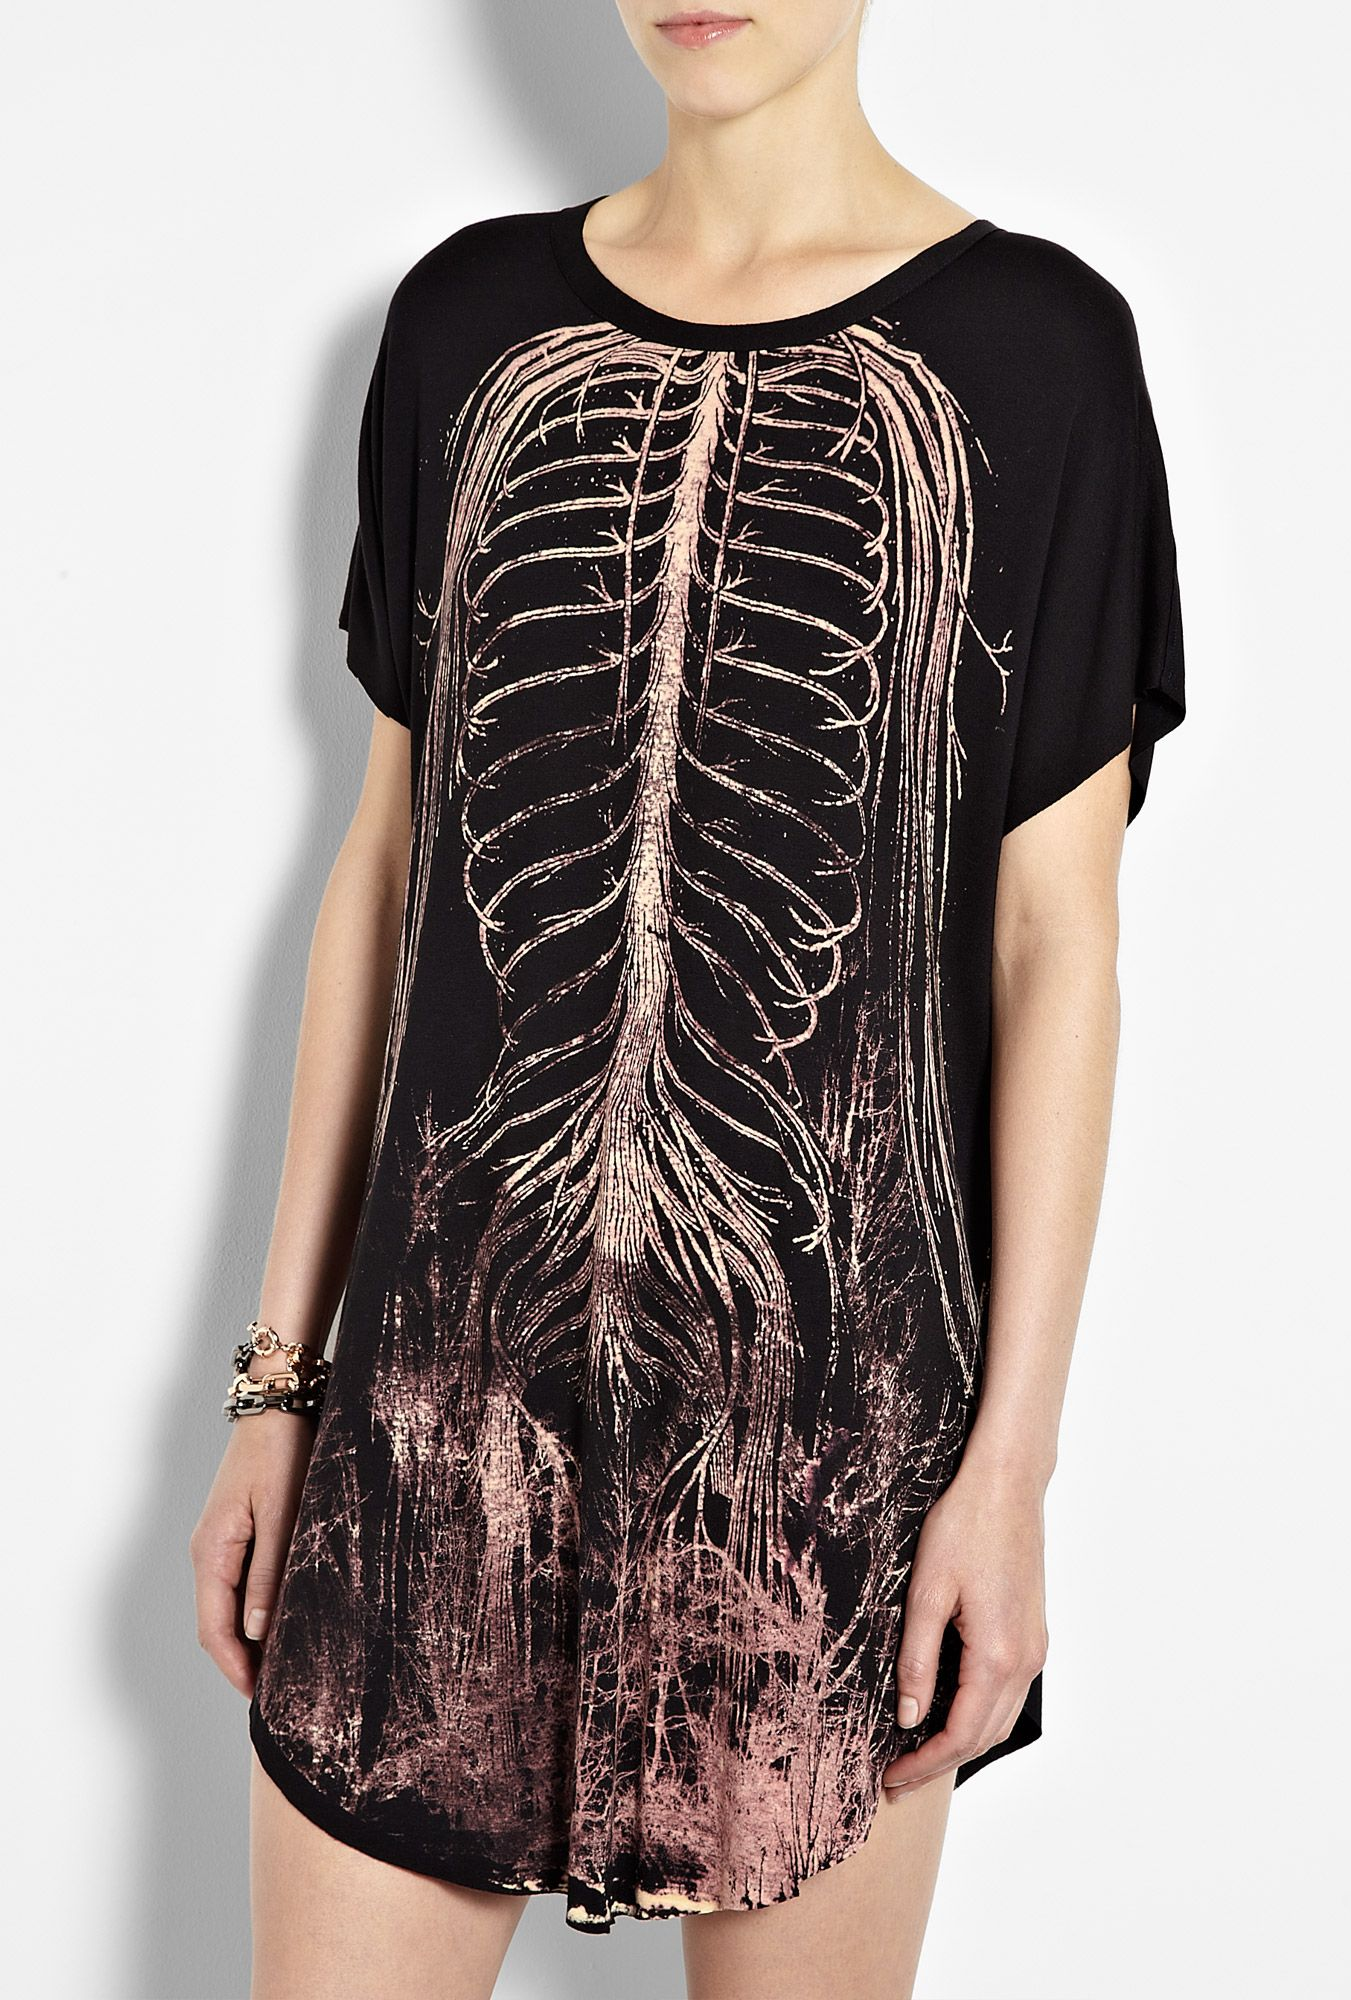 Black Bones Easy T-Shirt Dress by Draw In Light because I like ...